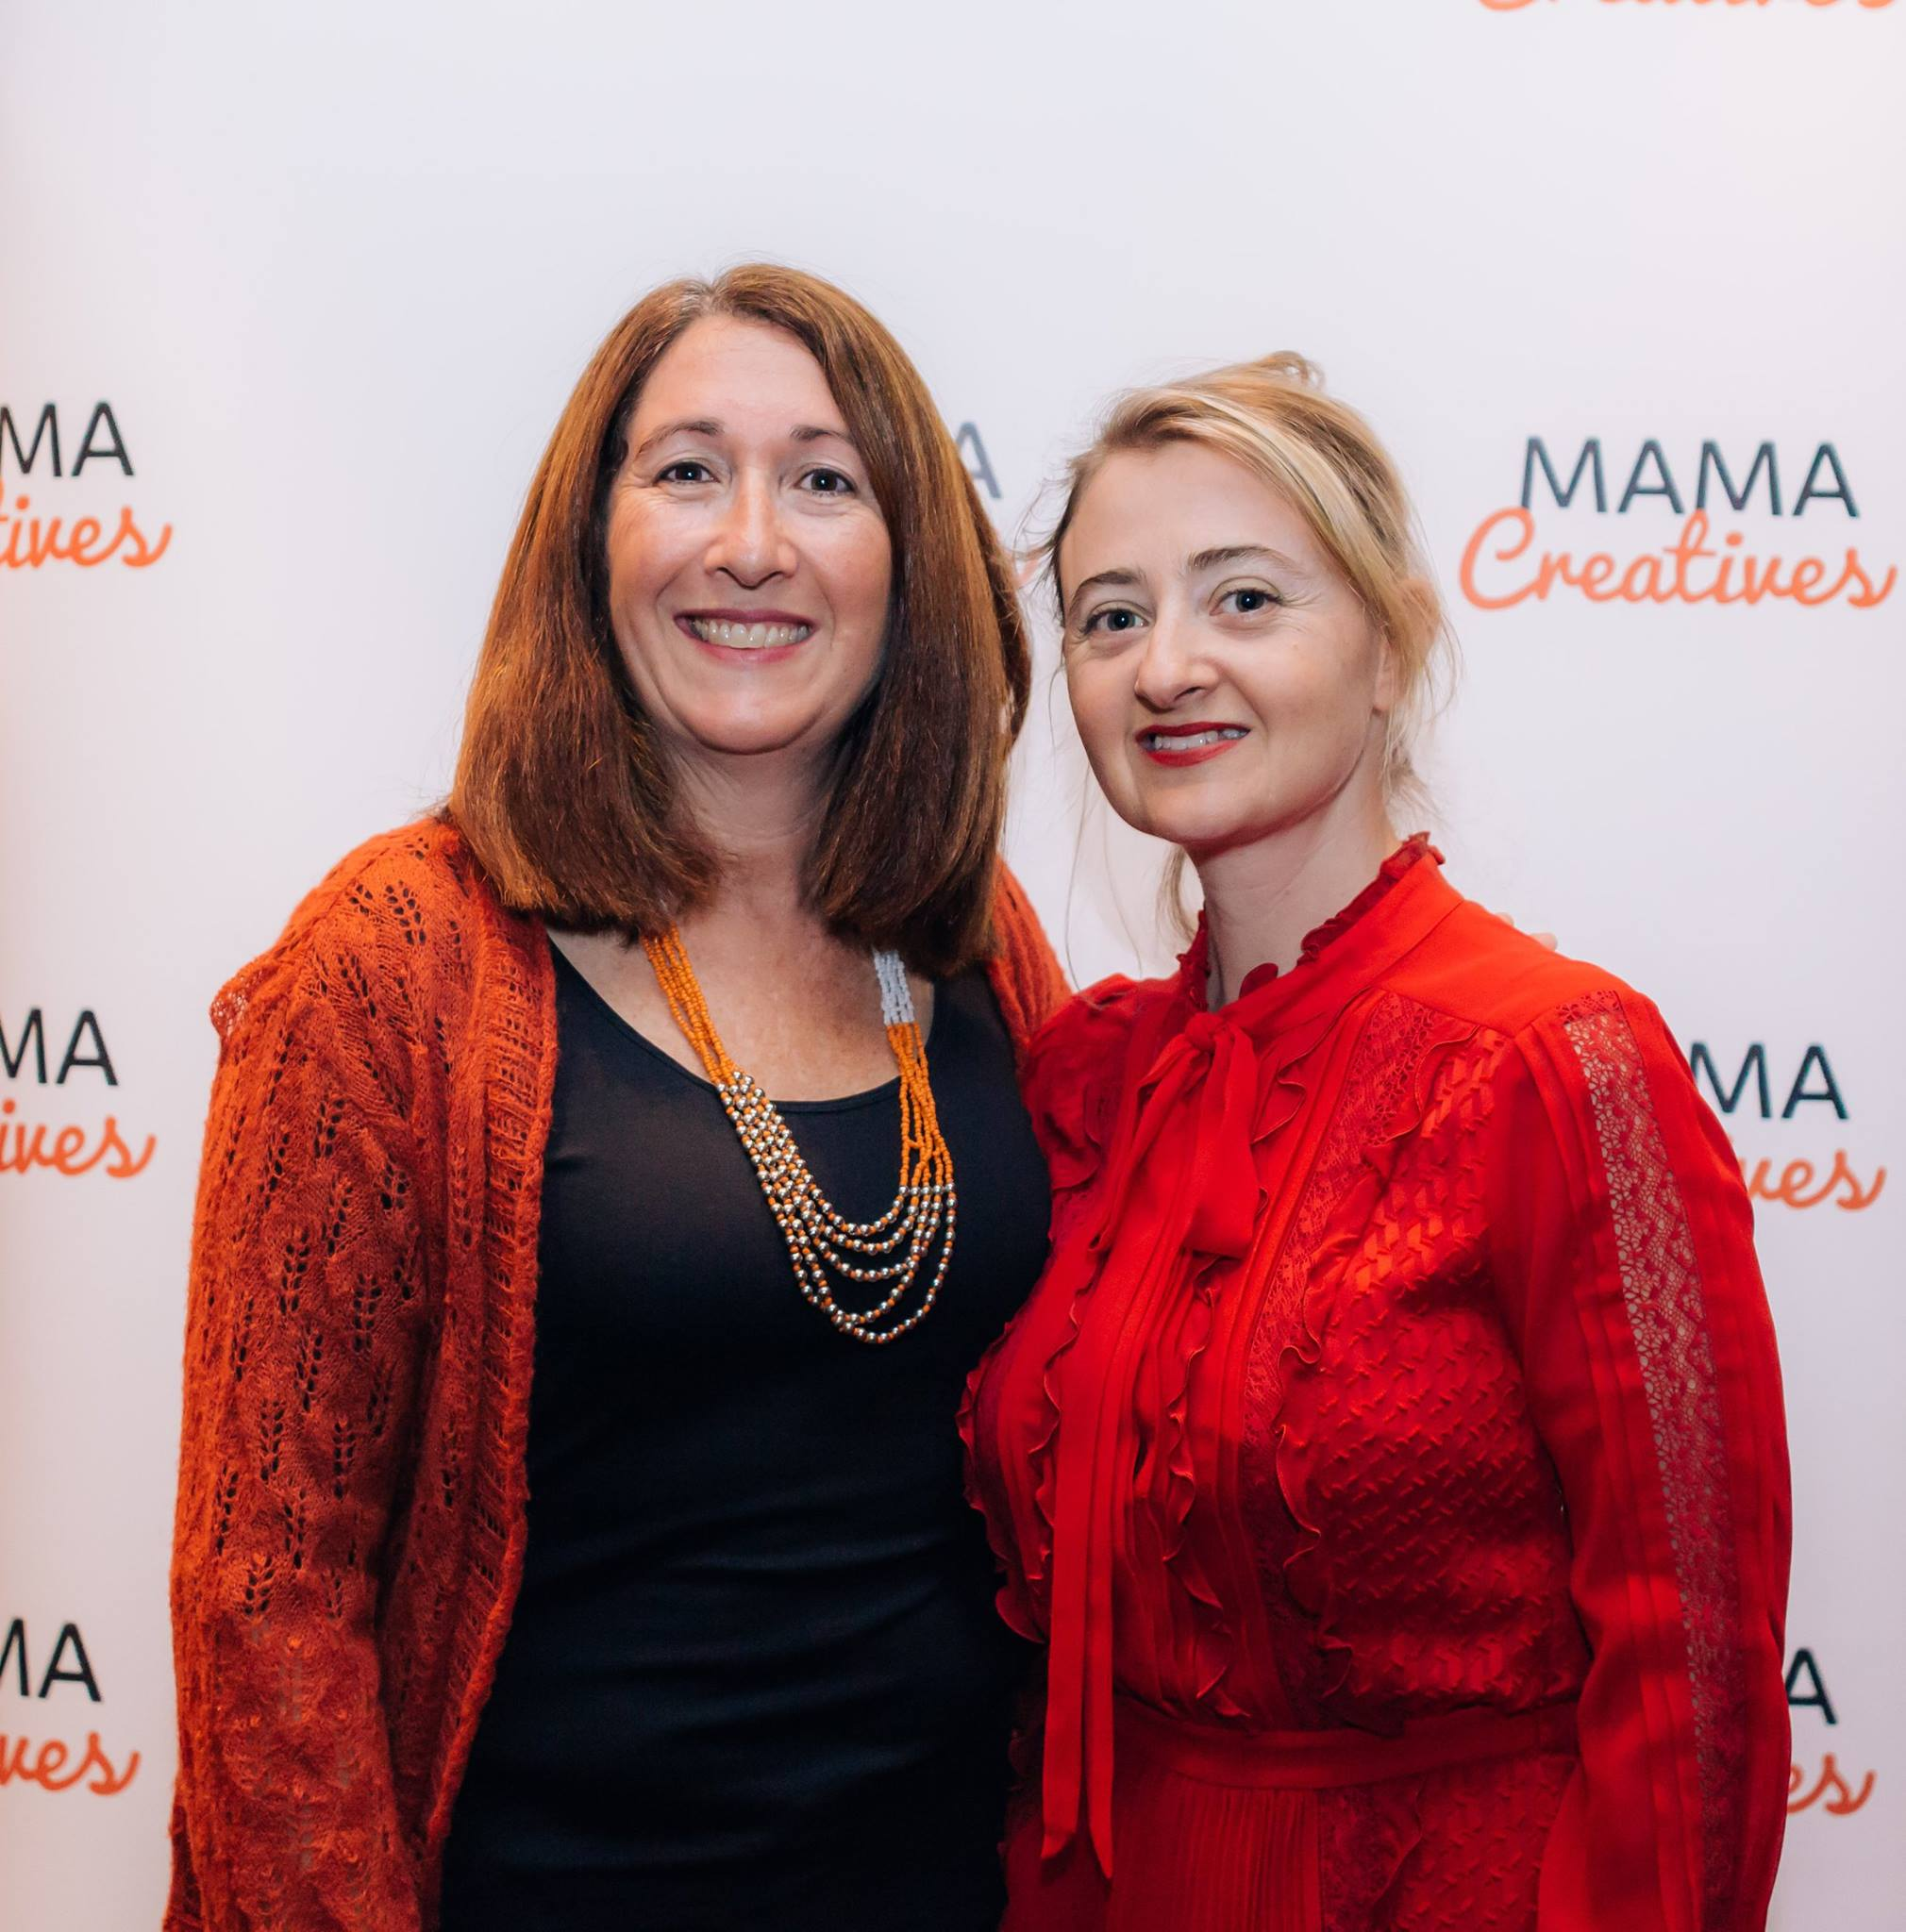 With a very special mama, at our inspiring Mama Creatives Mother's Day Celebration with Zoe Bingley-Pullin, chef, nutritionist, TV presenter and author of the fabulous cookbook 'Falling in Love with Food'.